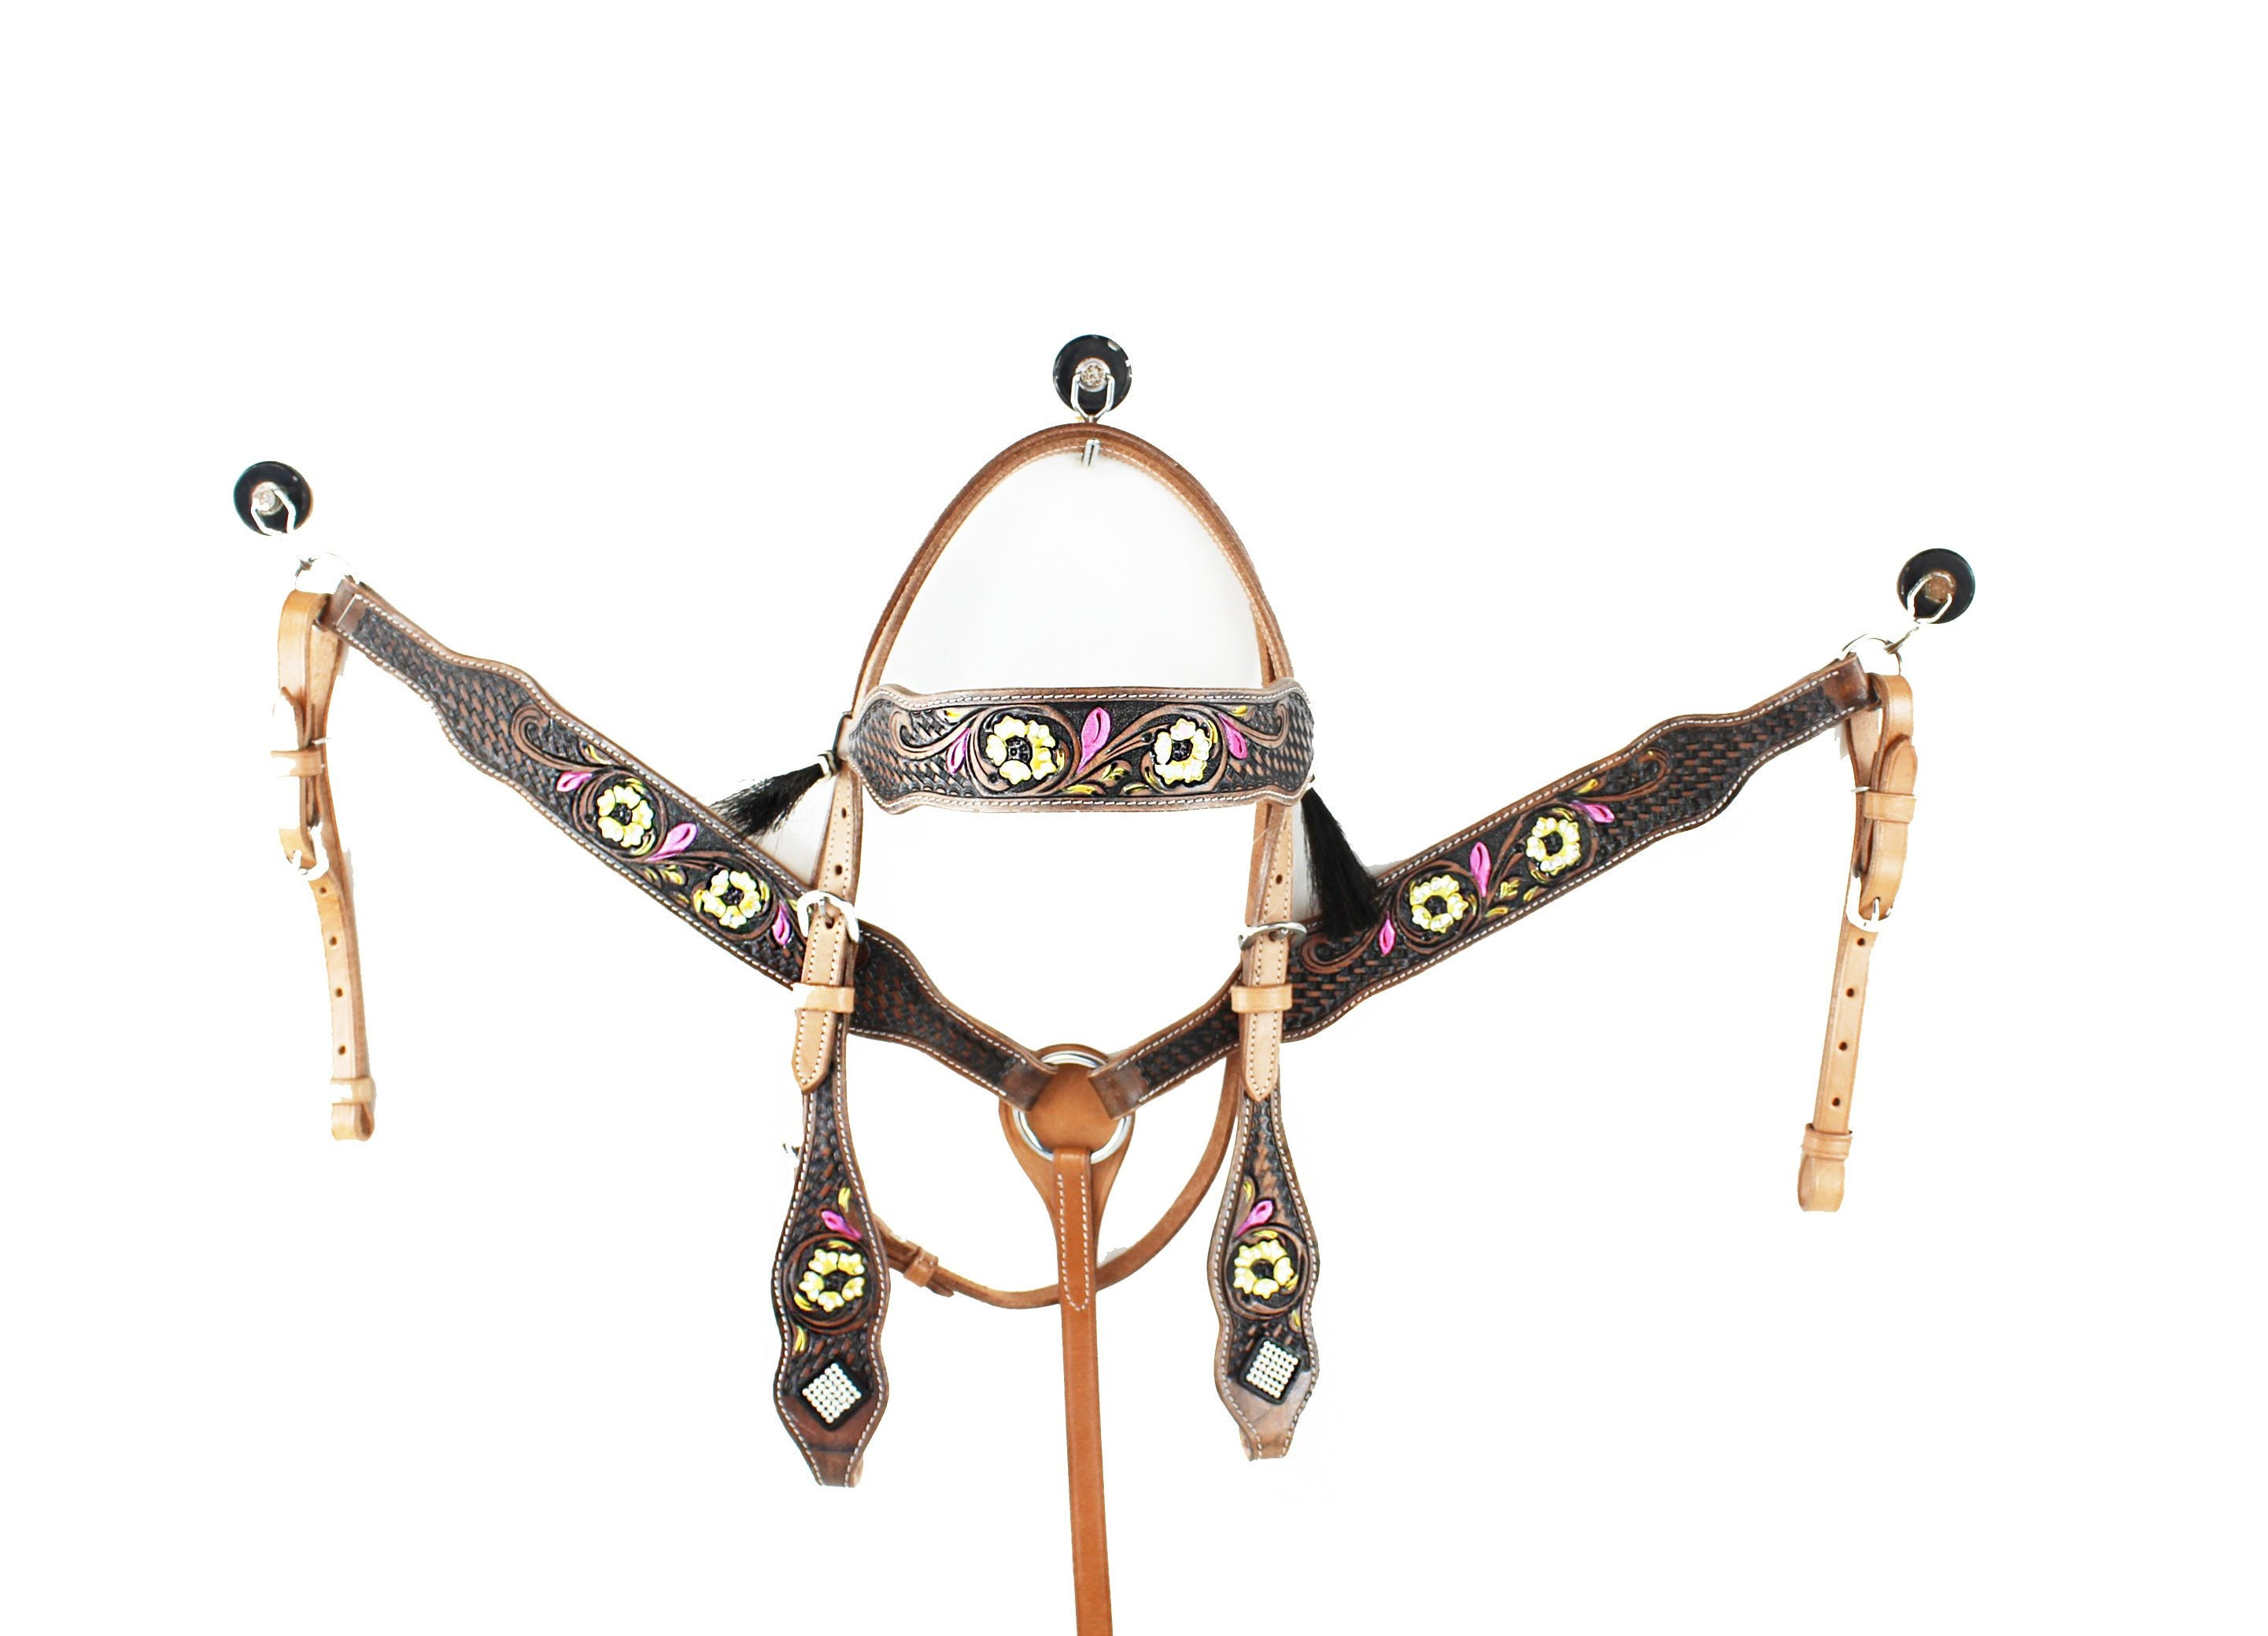 Western Headstall Bridle Reins Breast Collar Horse Leather Blue Jewels Tack Set